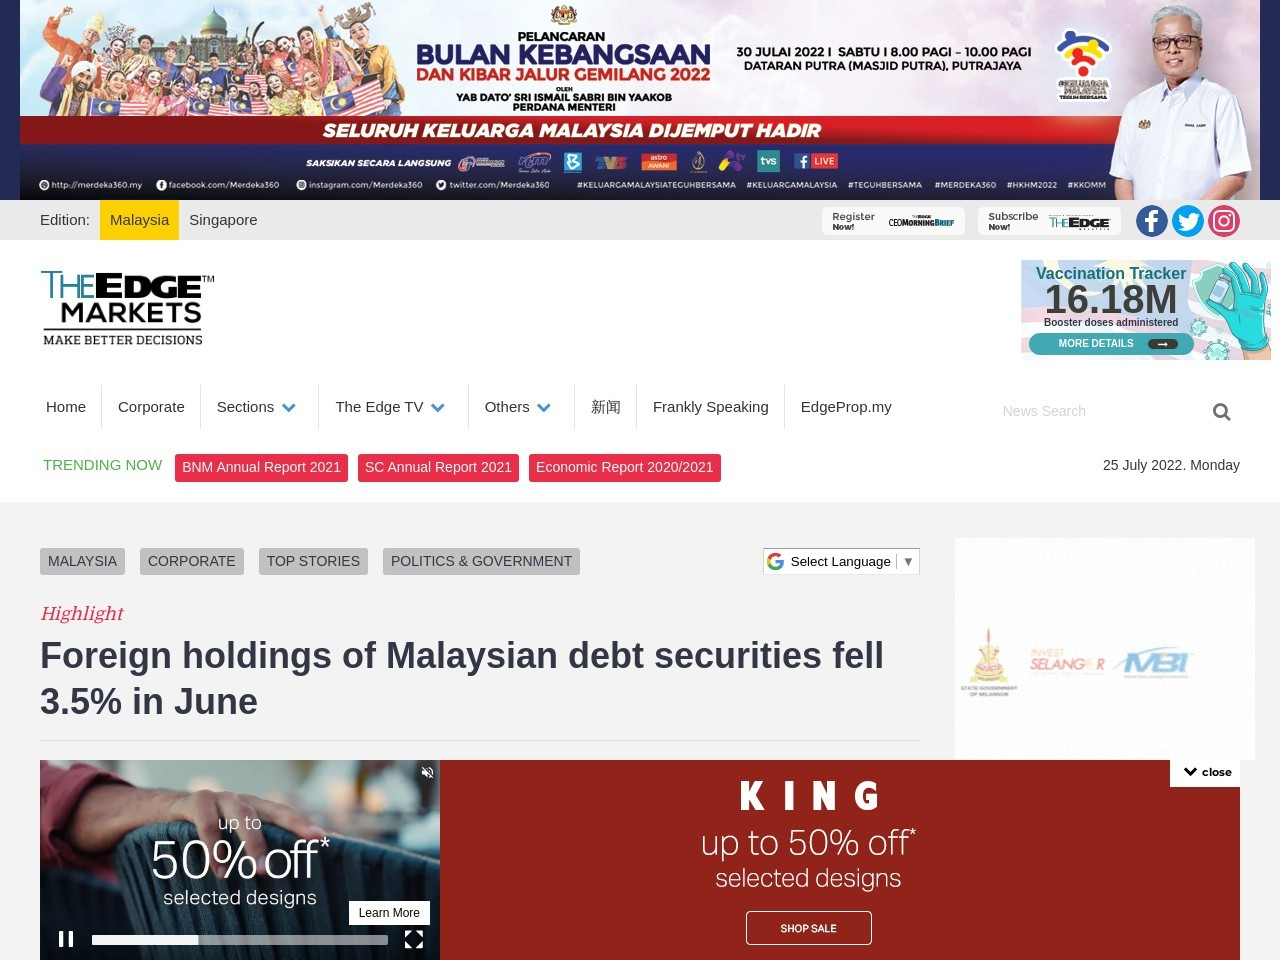 Foreign holdings of Malaysian debt securities fell 3.5% in June